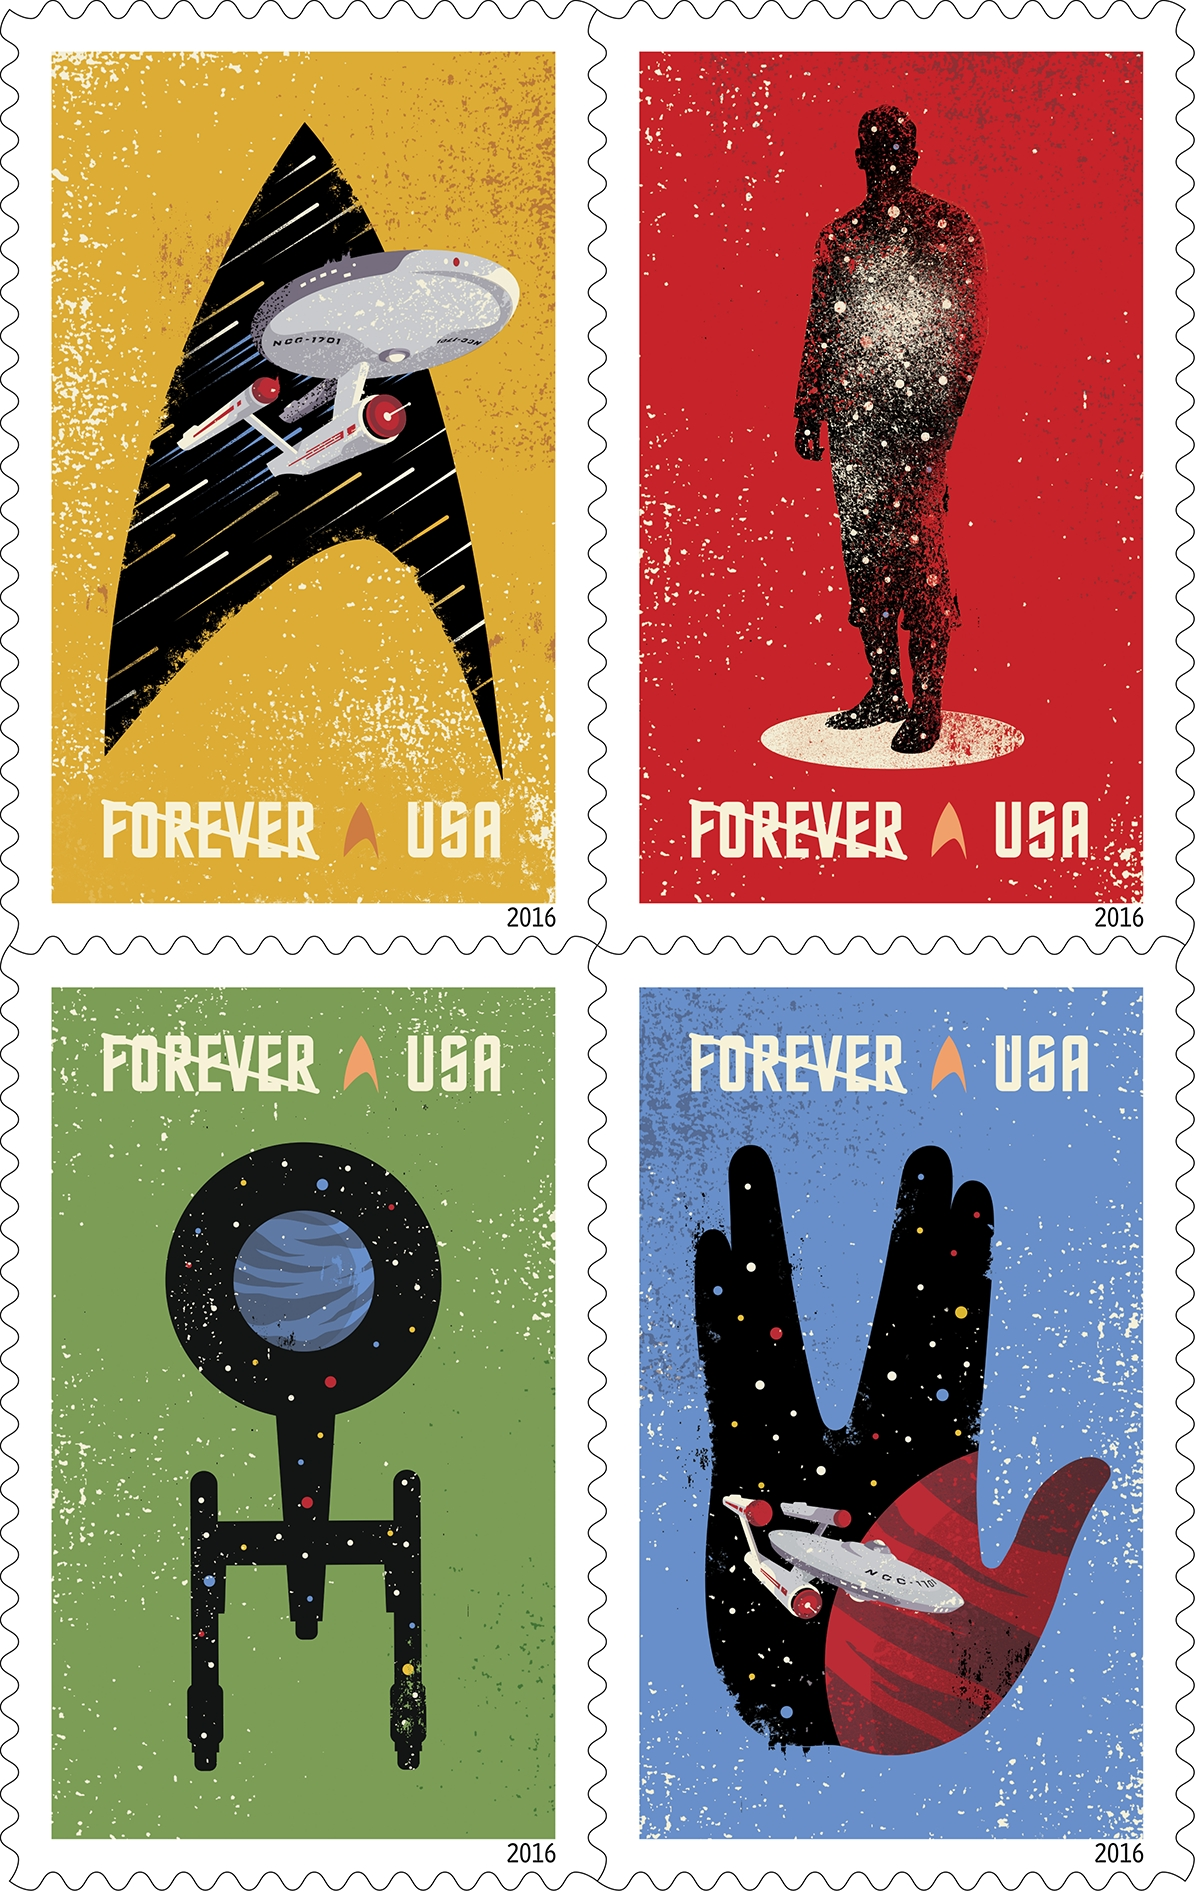 star trek stamps to